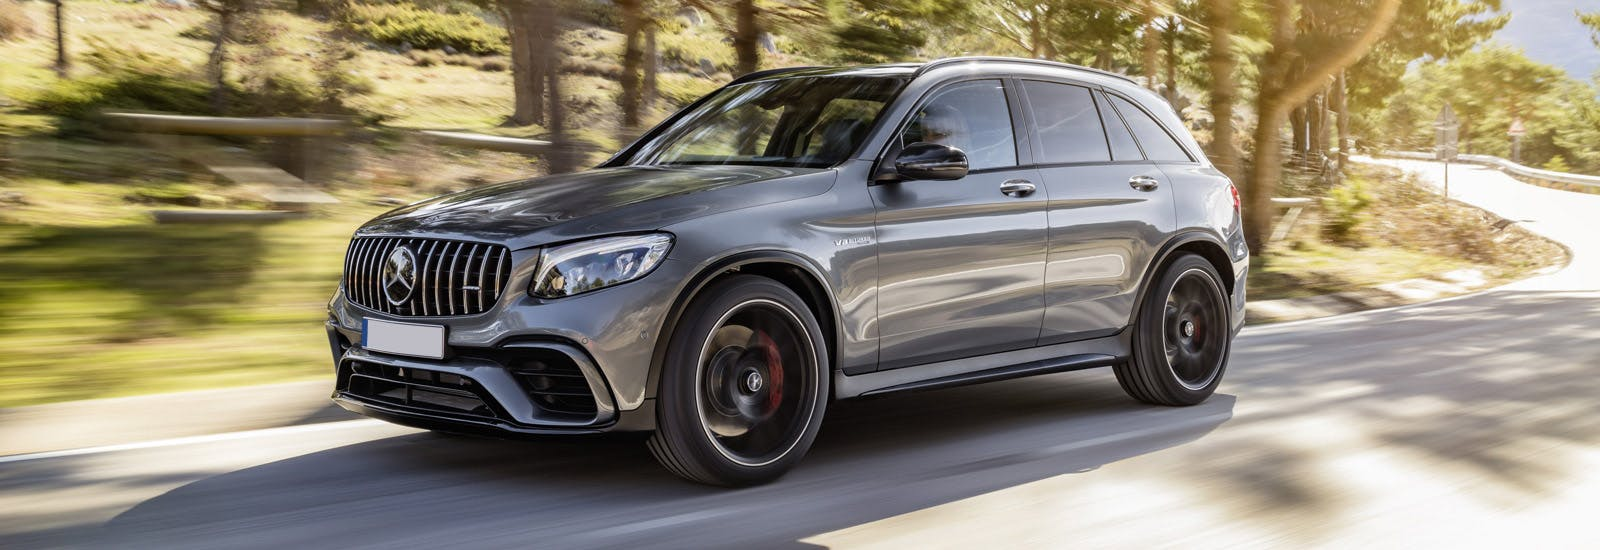 Mercedesbenz Gle 250 Road Test Review 20160108 Gm273g in addition Systeme Dechappement Sportif Supersprint Mercedes W176 A 180 122 Hp 2013 further Aston Martin DB11 as well Content likewise Top Gear 2016 Mercedes Benz Amg Gt And. on amg twin turbo